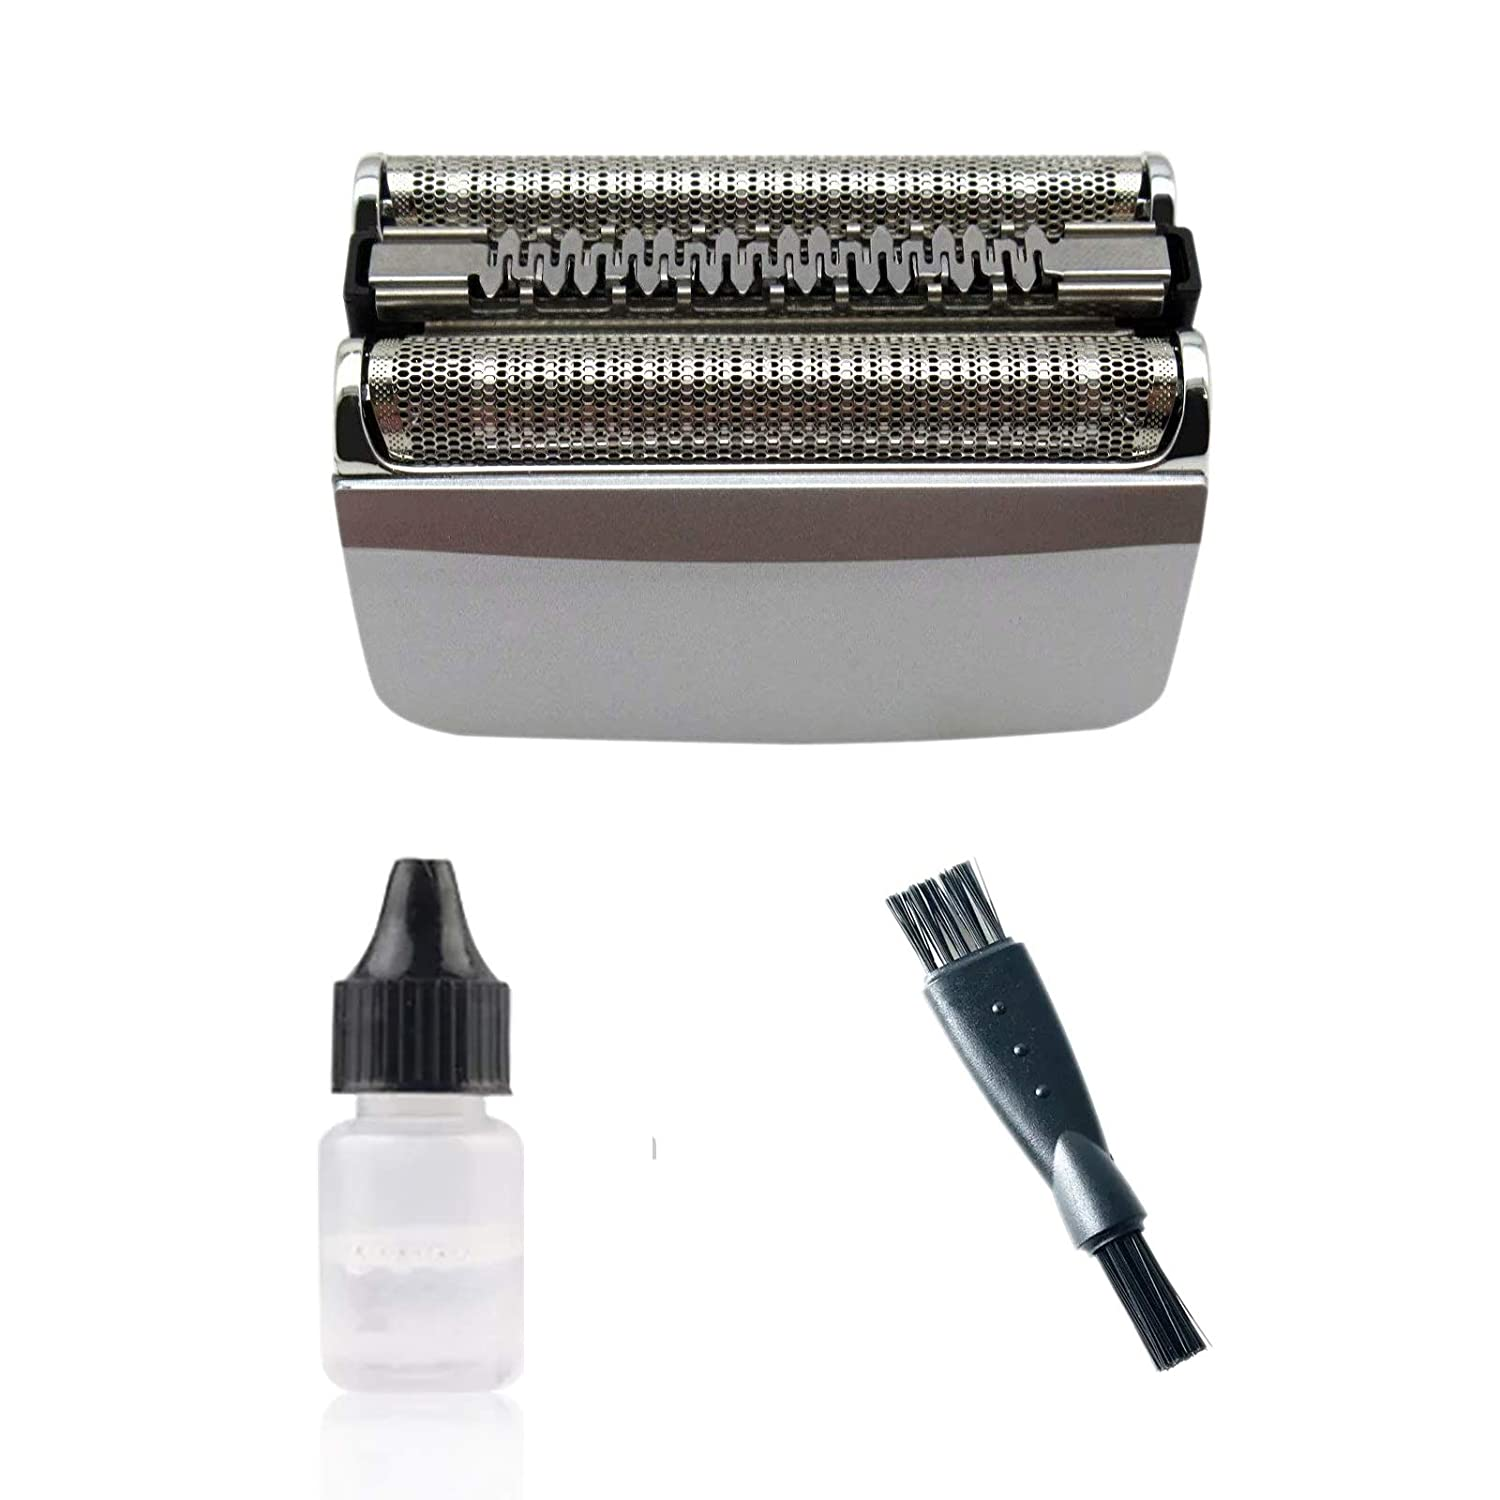 Xspeedonline Shaver Replacement Directly managed store Foil Head Cutter Cheap mail order specialty store Rozor w